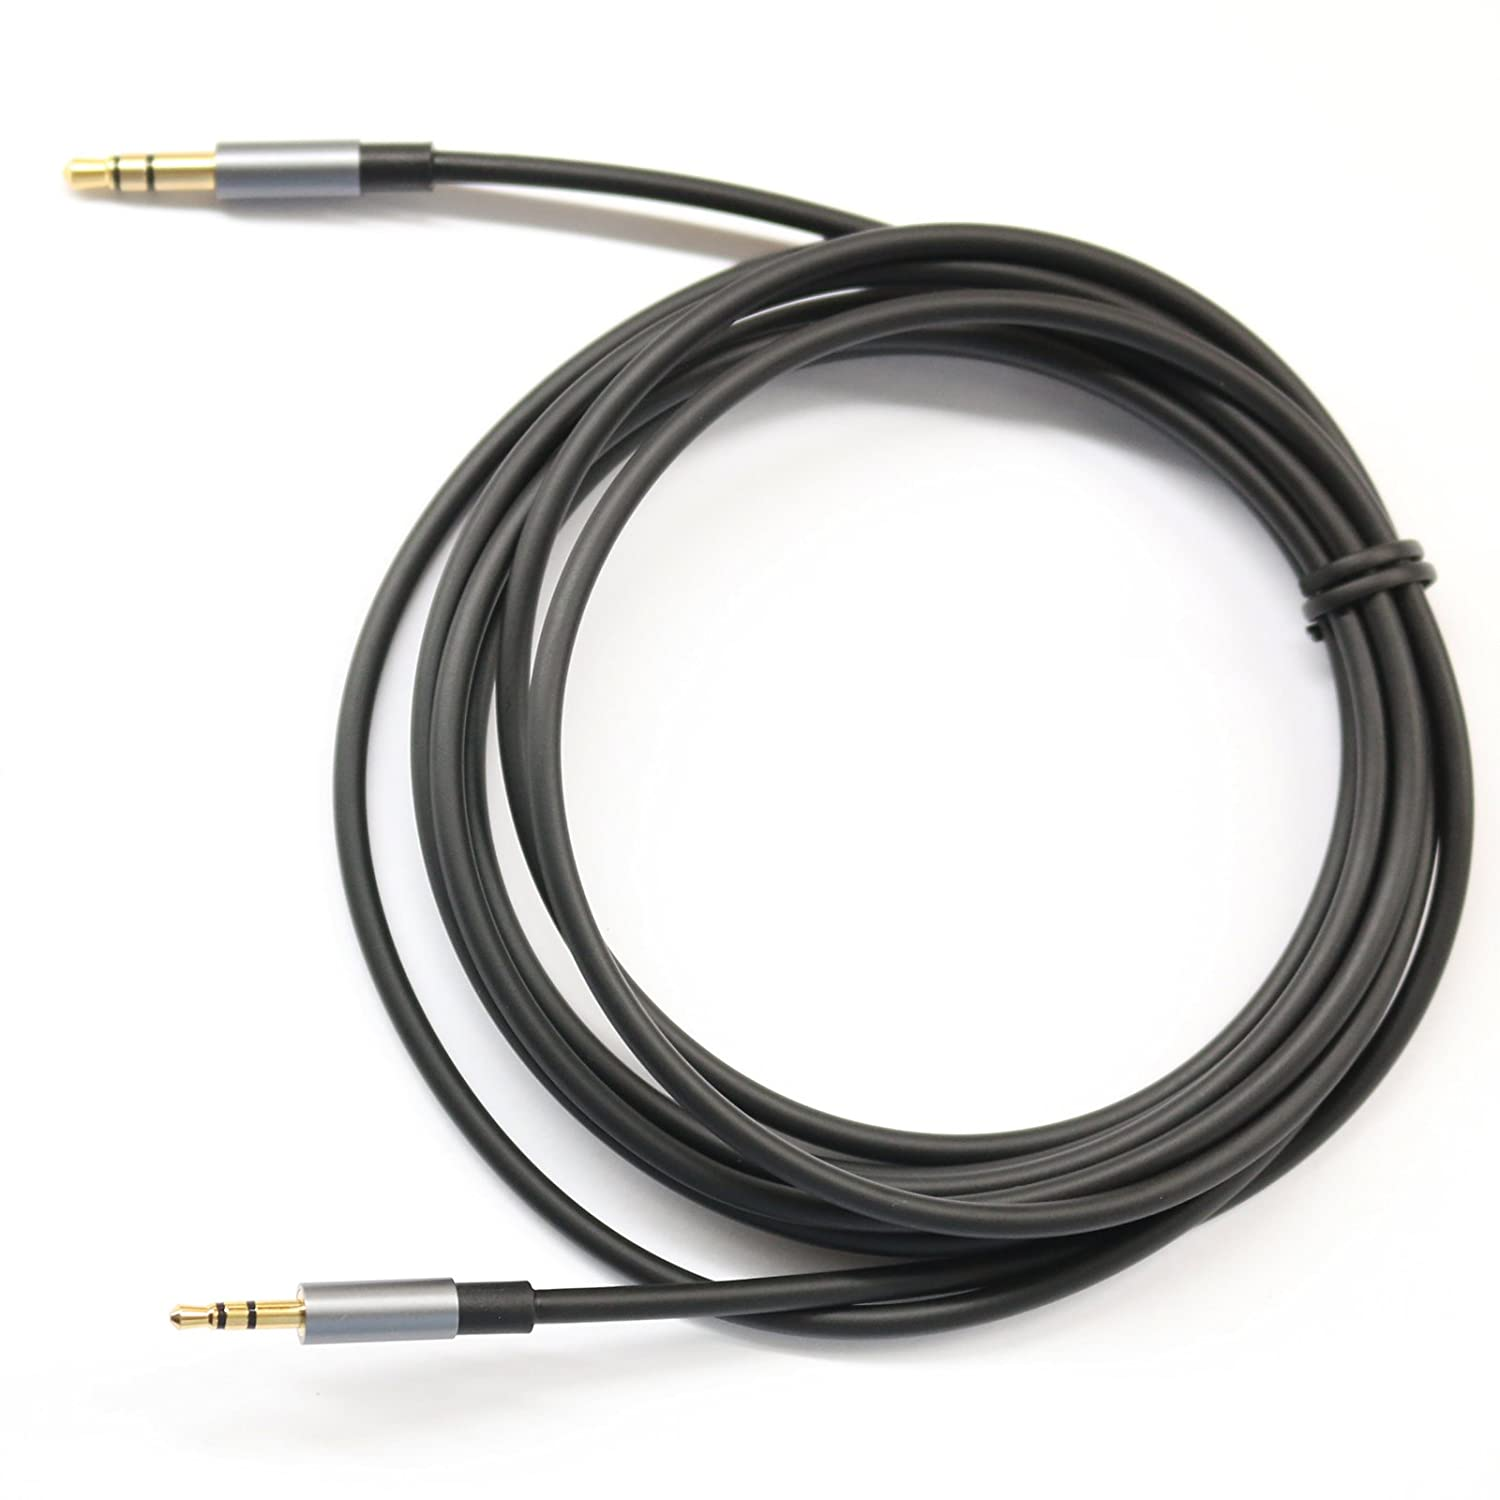 KetDirect Black 3ft Gold Plated Design 3.5mm Male to 2.5mm Male Car Auxiliary Audio cable Cord headphone connect cable for Apple, Android Smartphone, Tablet and MP3 Player LYSB0186L3PJC-ELECTRNCS